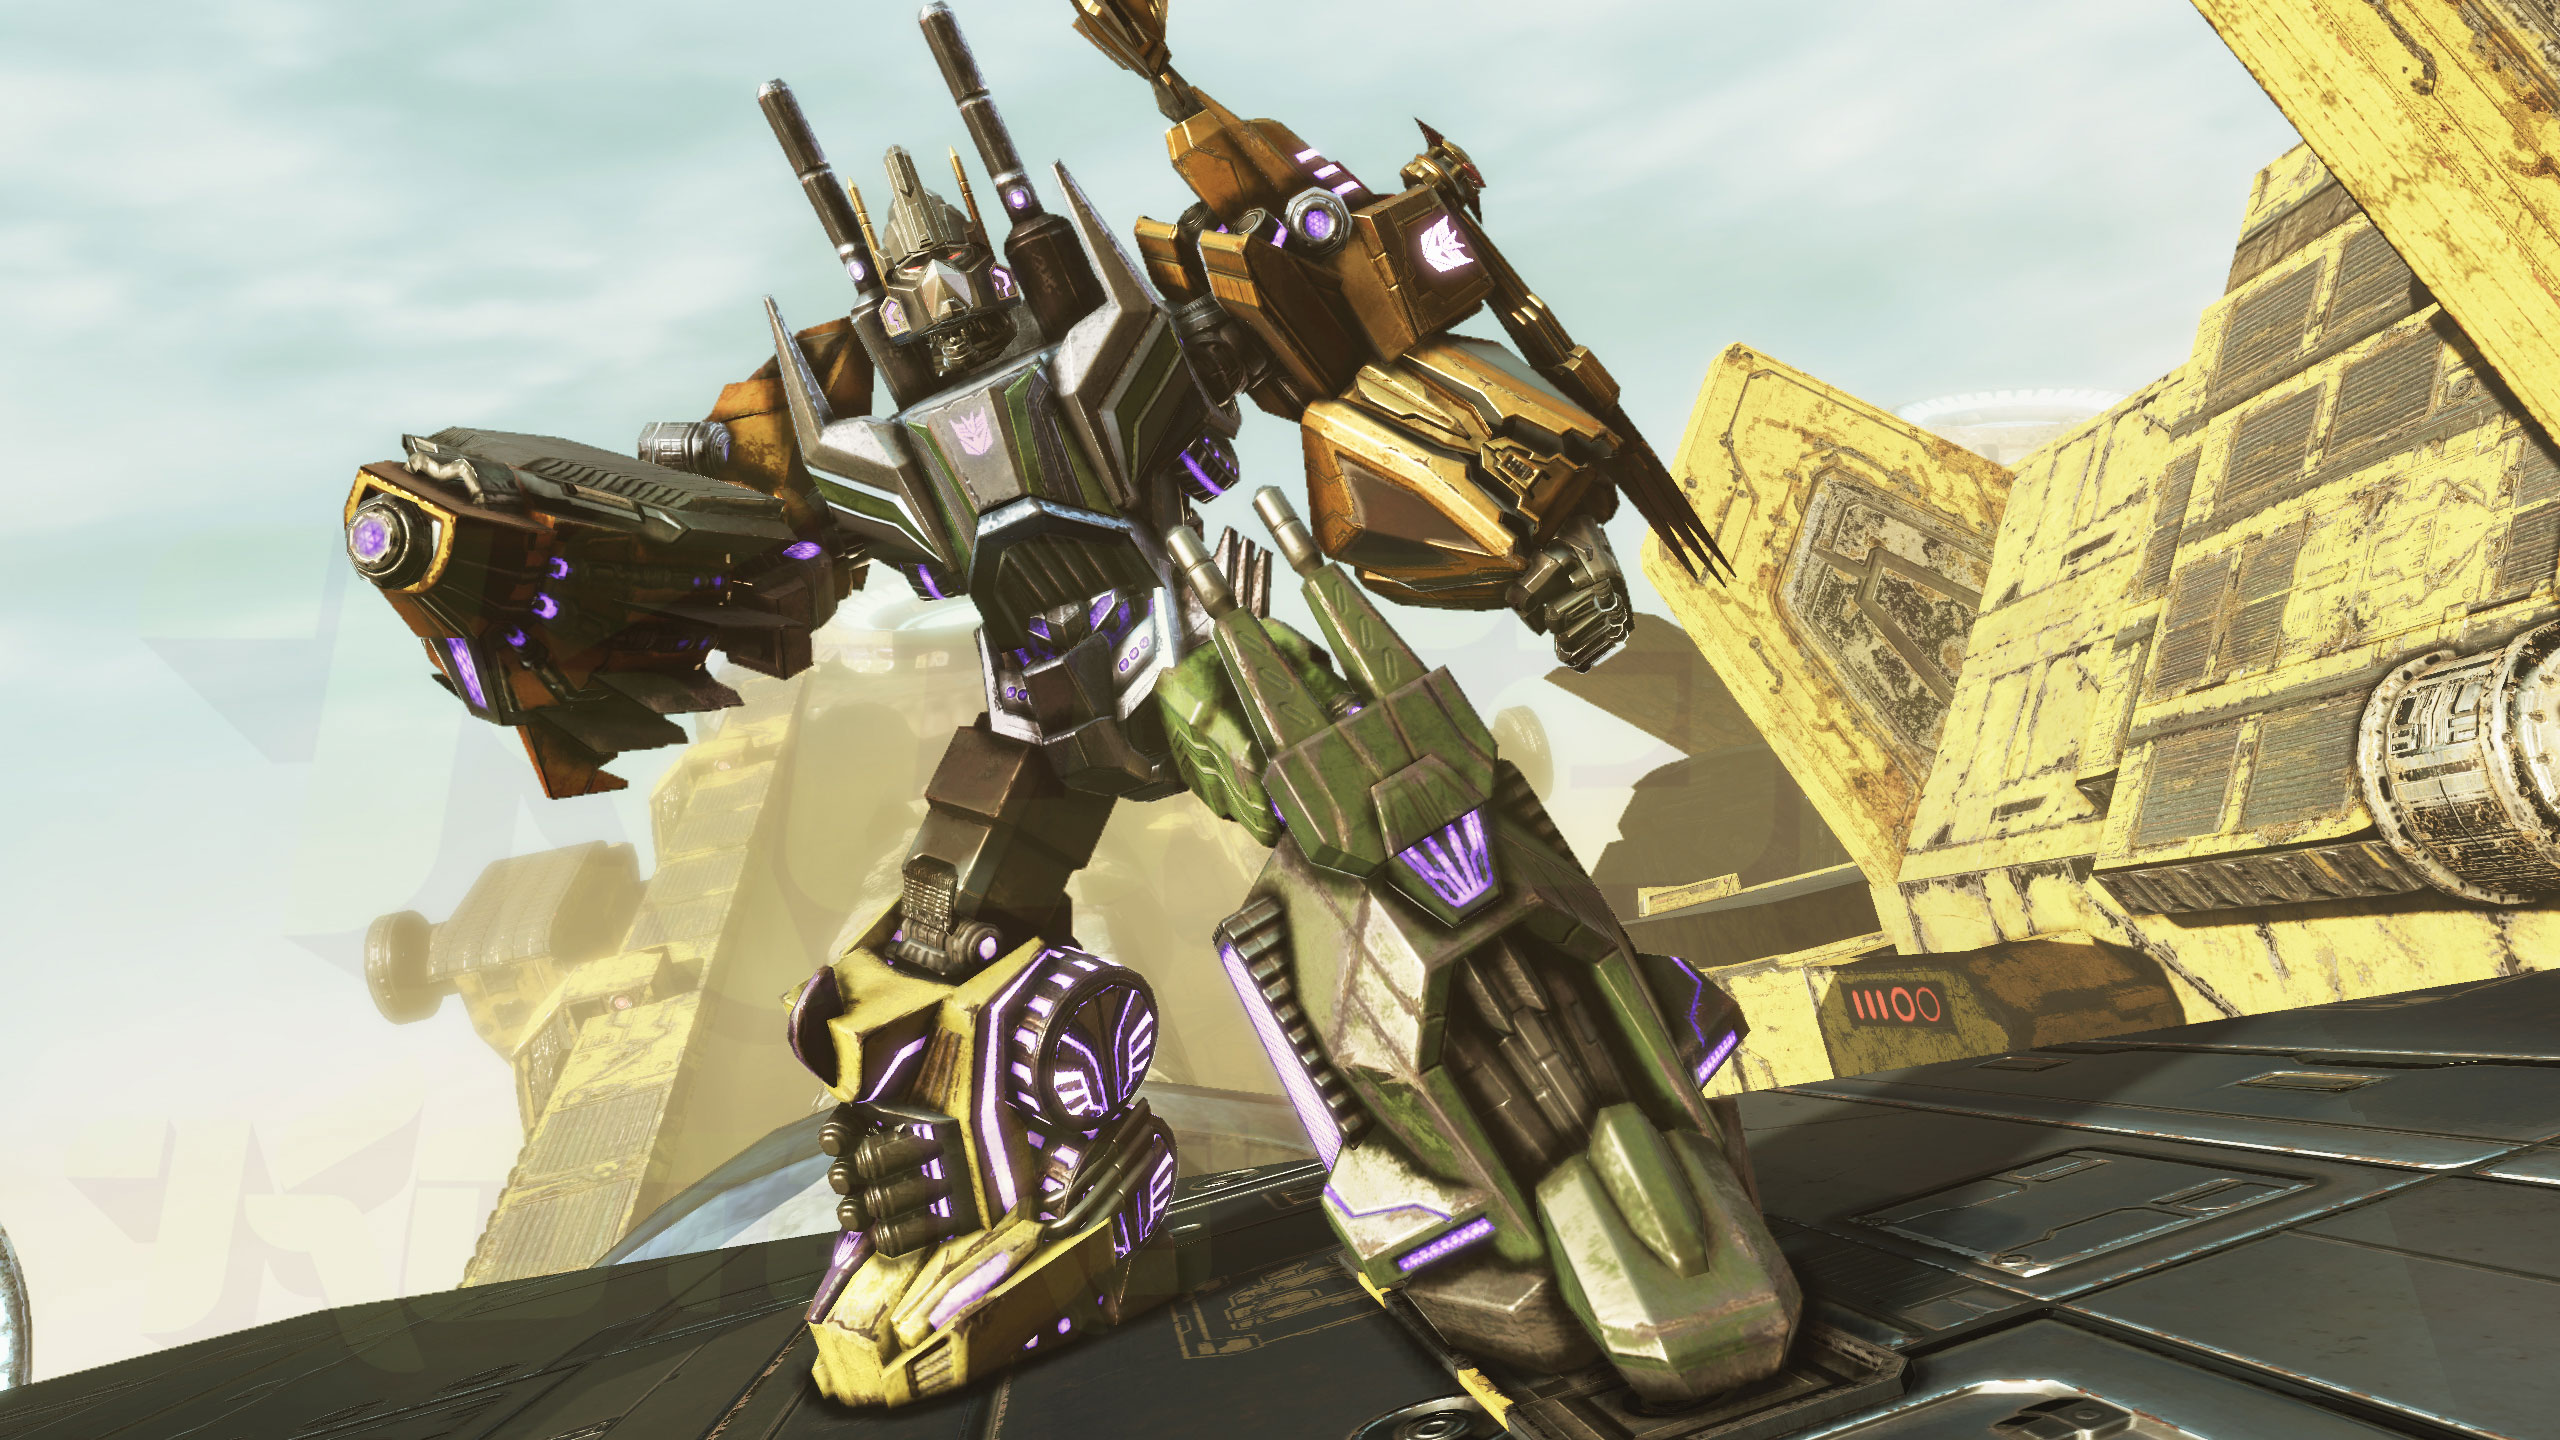 Grimlock Fall Of Cybertron Wallpaper Bruticus Leads Transformers Fall Of Cybertron S Toy Store